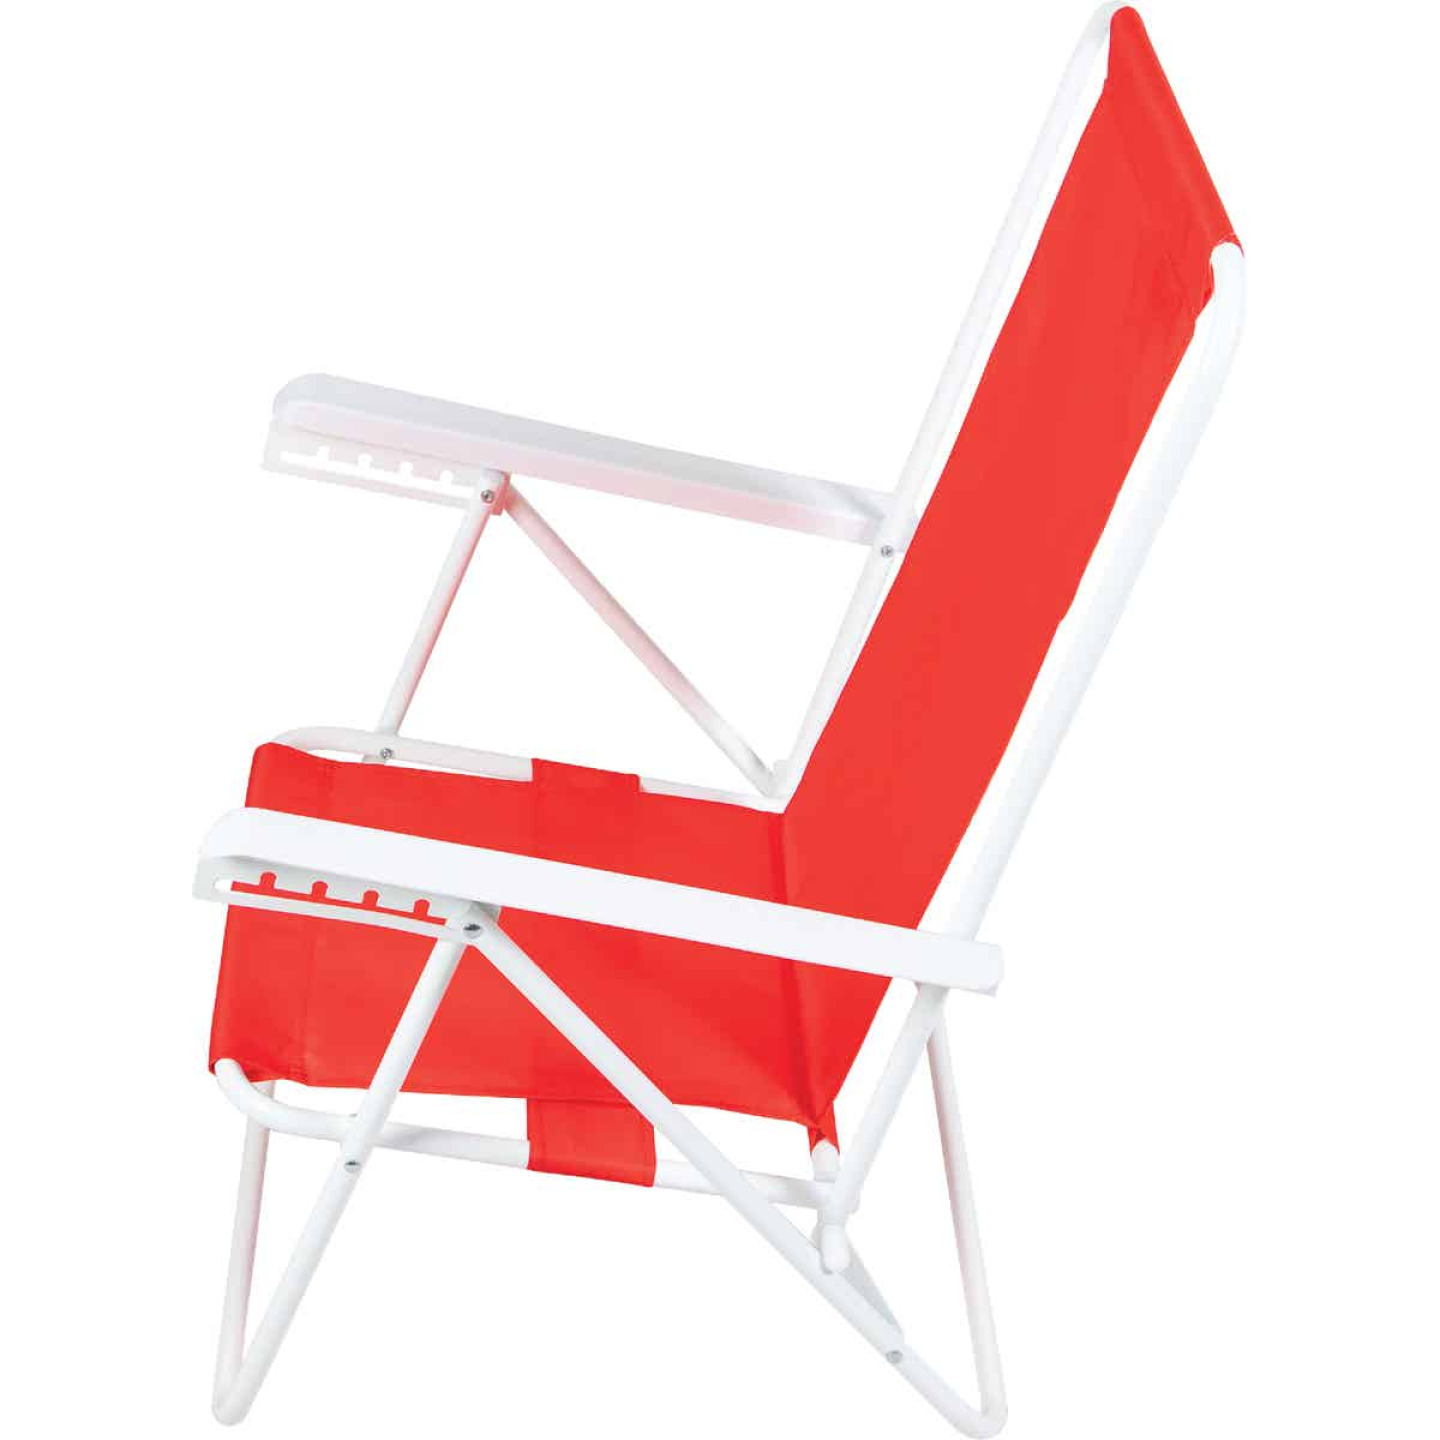 Rio Brands Wave 5-Position Persimmon Red Steel Folding Beach Chair Image 6